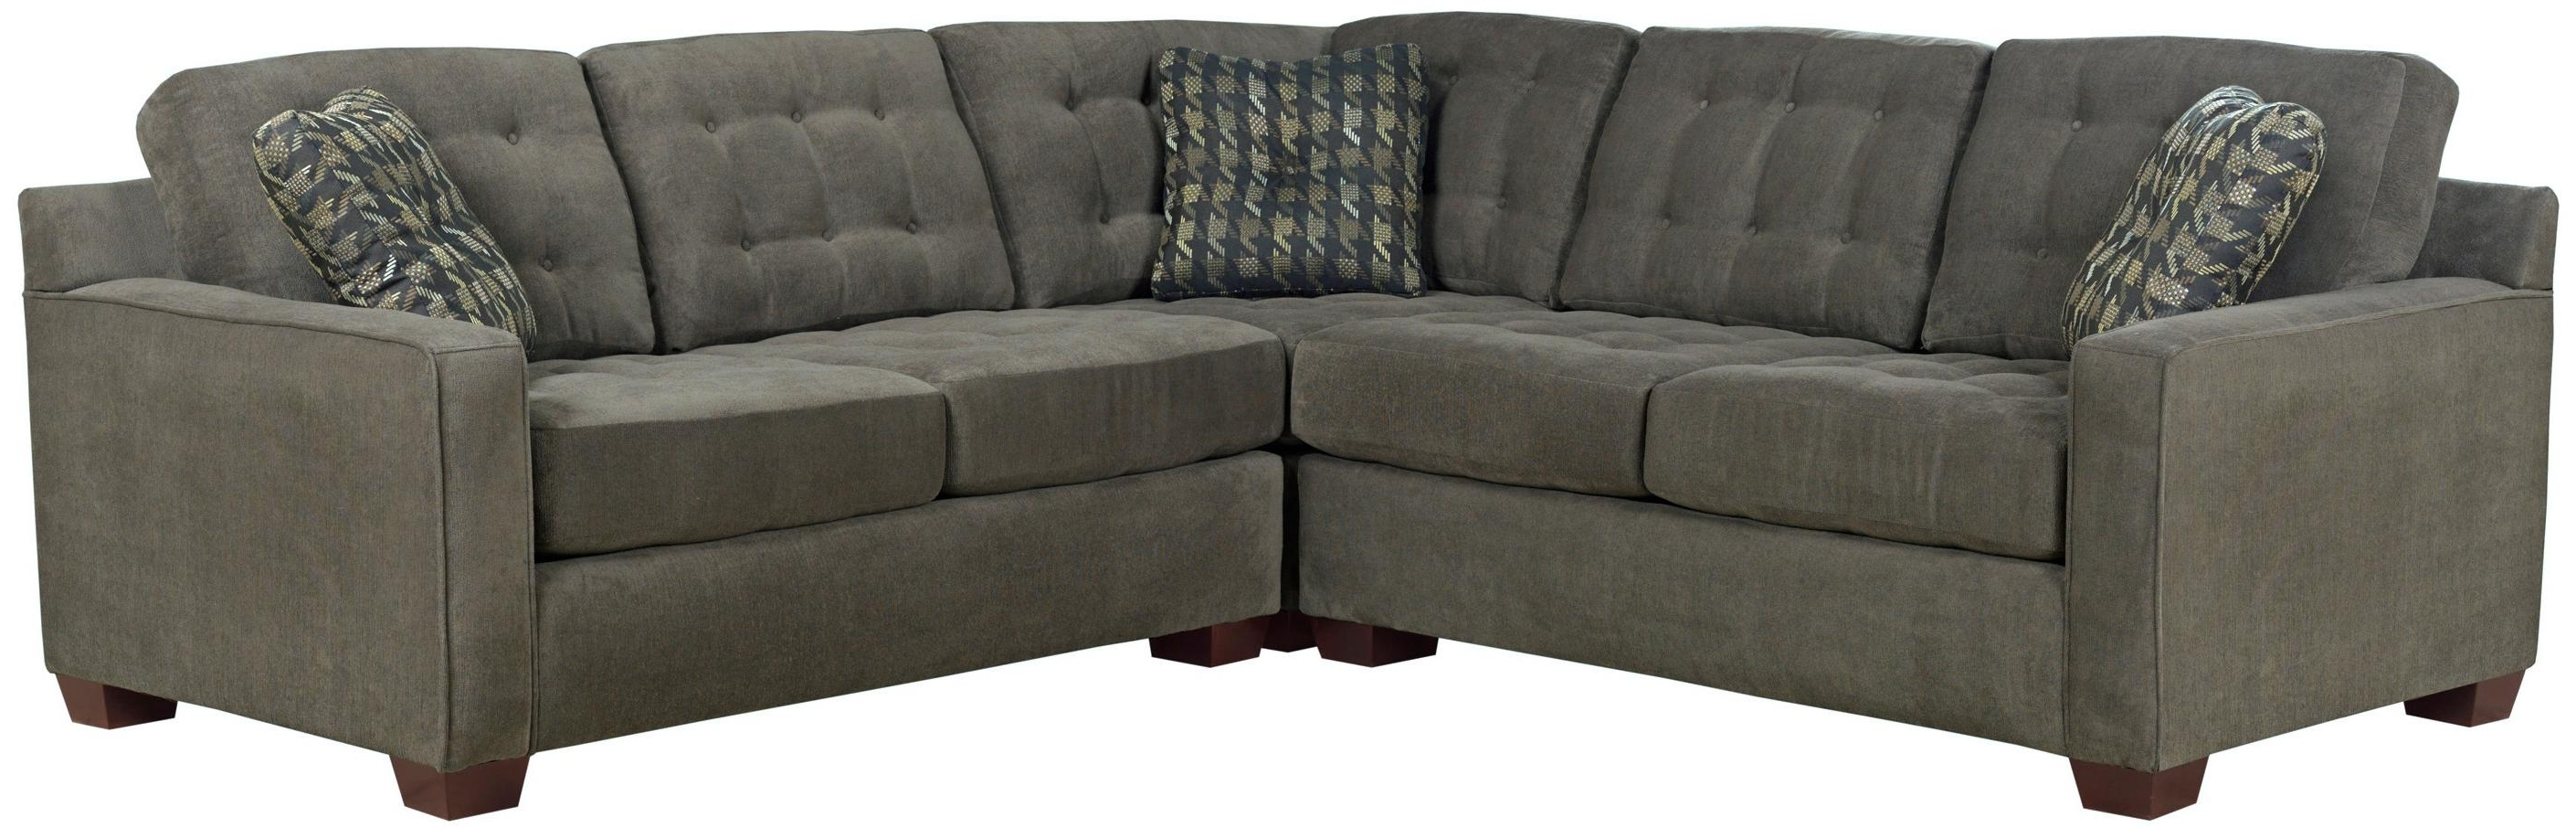 Broyhill Sectional Sofas With Widely Used Broyhill Furniture Tribeca Contemporary L Shaped Sectional Sofa (View 10 of 20)